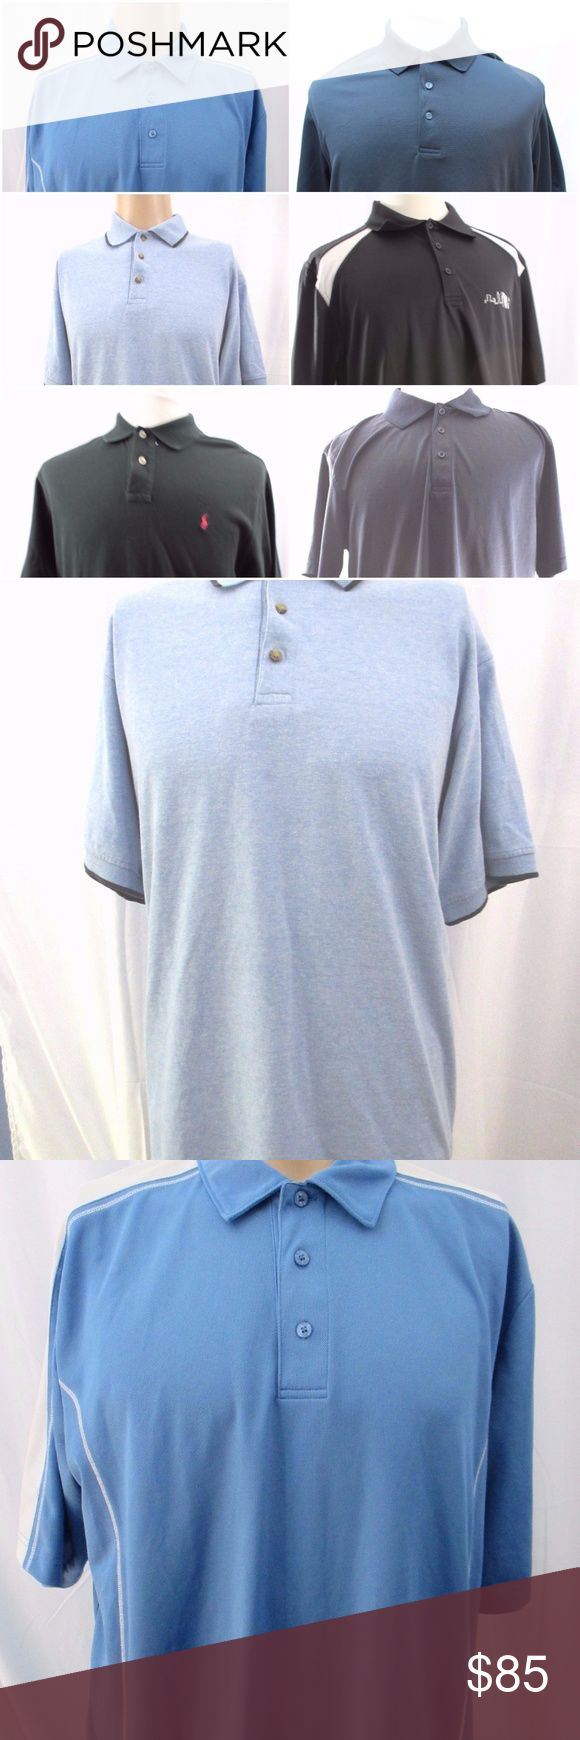 Mens Polo Golf Shirts Lot of 6 Size Large Lot of 6 Mens Golf Polo Shirts  Short Sleeve 3 Button Placket  Good preowned condition  Allegheny Trail Blue Short Sleeve  Short Sleeve Blue Extreme Dry Polyester 3 Button Golf Polo Ralph Lauren Shirt Short Sleeve Shirt Black Ben Hogan Performance Polo Golf Shirt Black Short Sleeve  Harriton Short Sleeve Shirt Black Three Button Placket Polyester  Short Sleeve Shirt Black White Three Button Placket Ralph Lauren Ben Hogan Harriton Allegheny Trail…